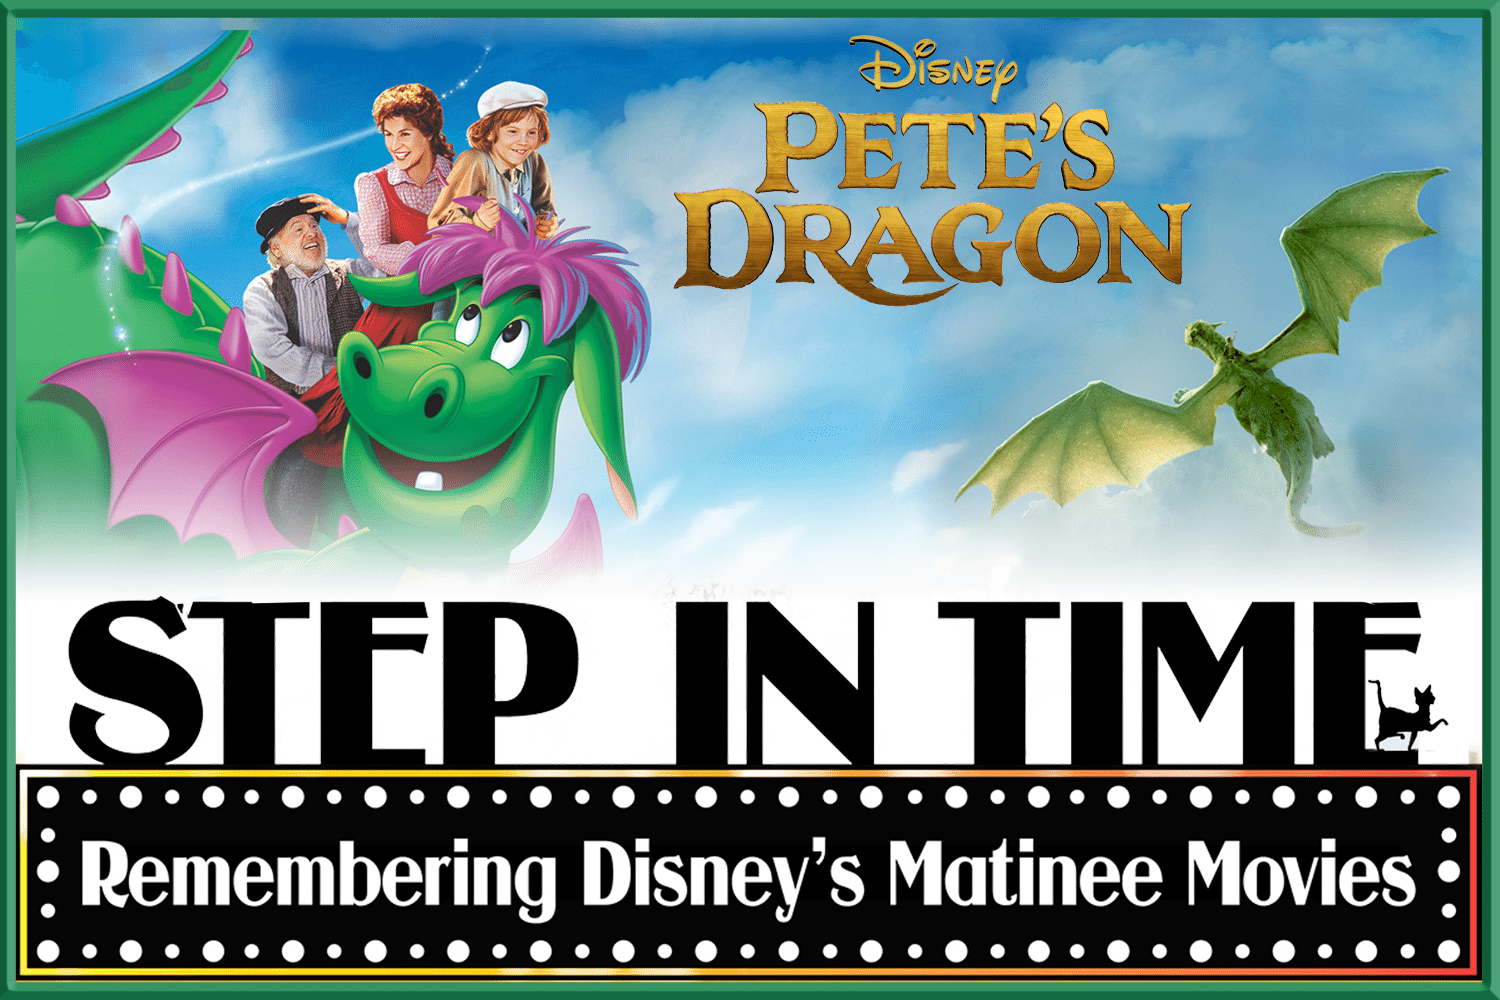 Step In Time: Pete's Dragon